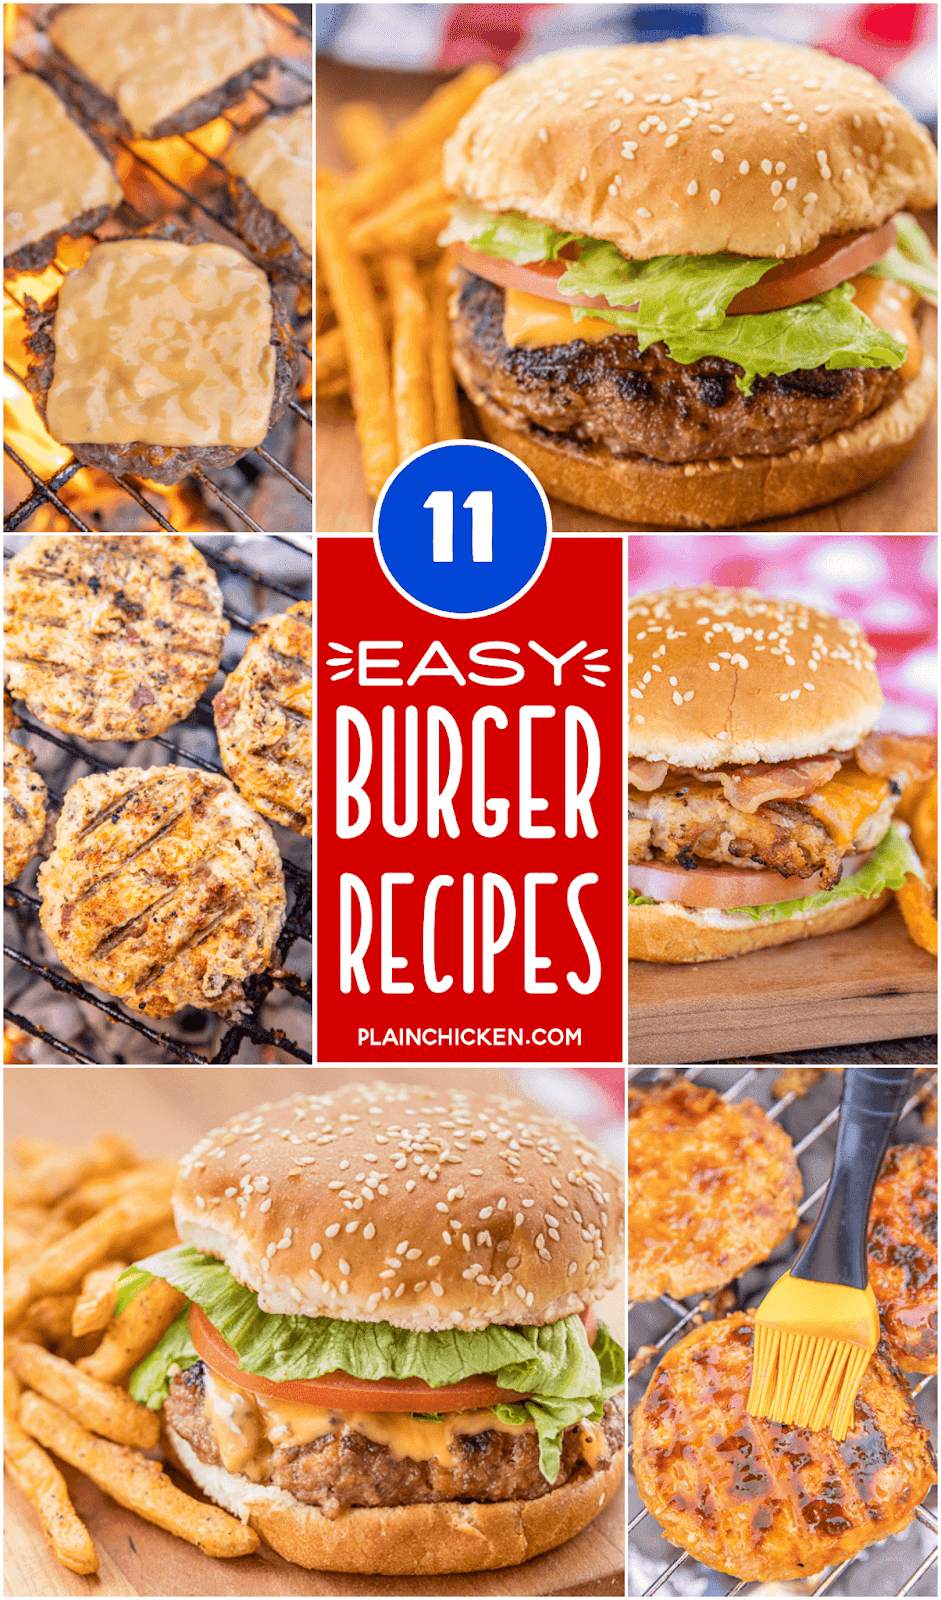 Easy Burger Recipes 11 Easy Hamburger Recipes For Summer Ground Beef And Chicken Burgers These Are T Easy Burgers Best Hamburger Recipes Easy Burger Recipe